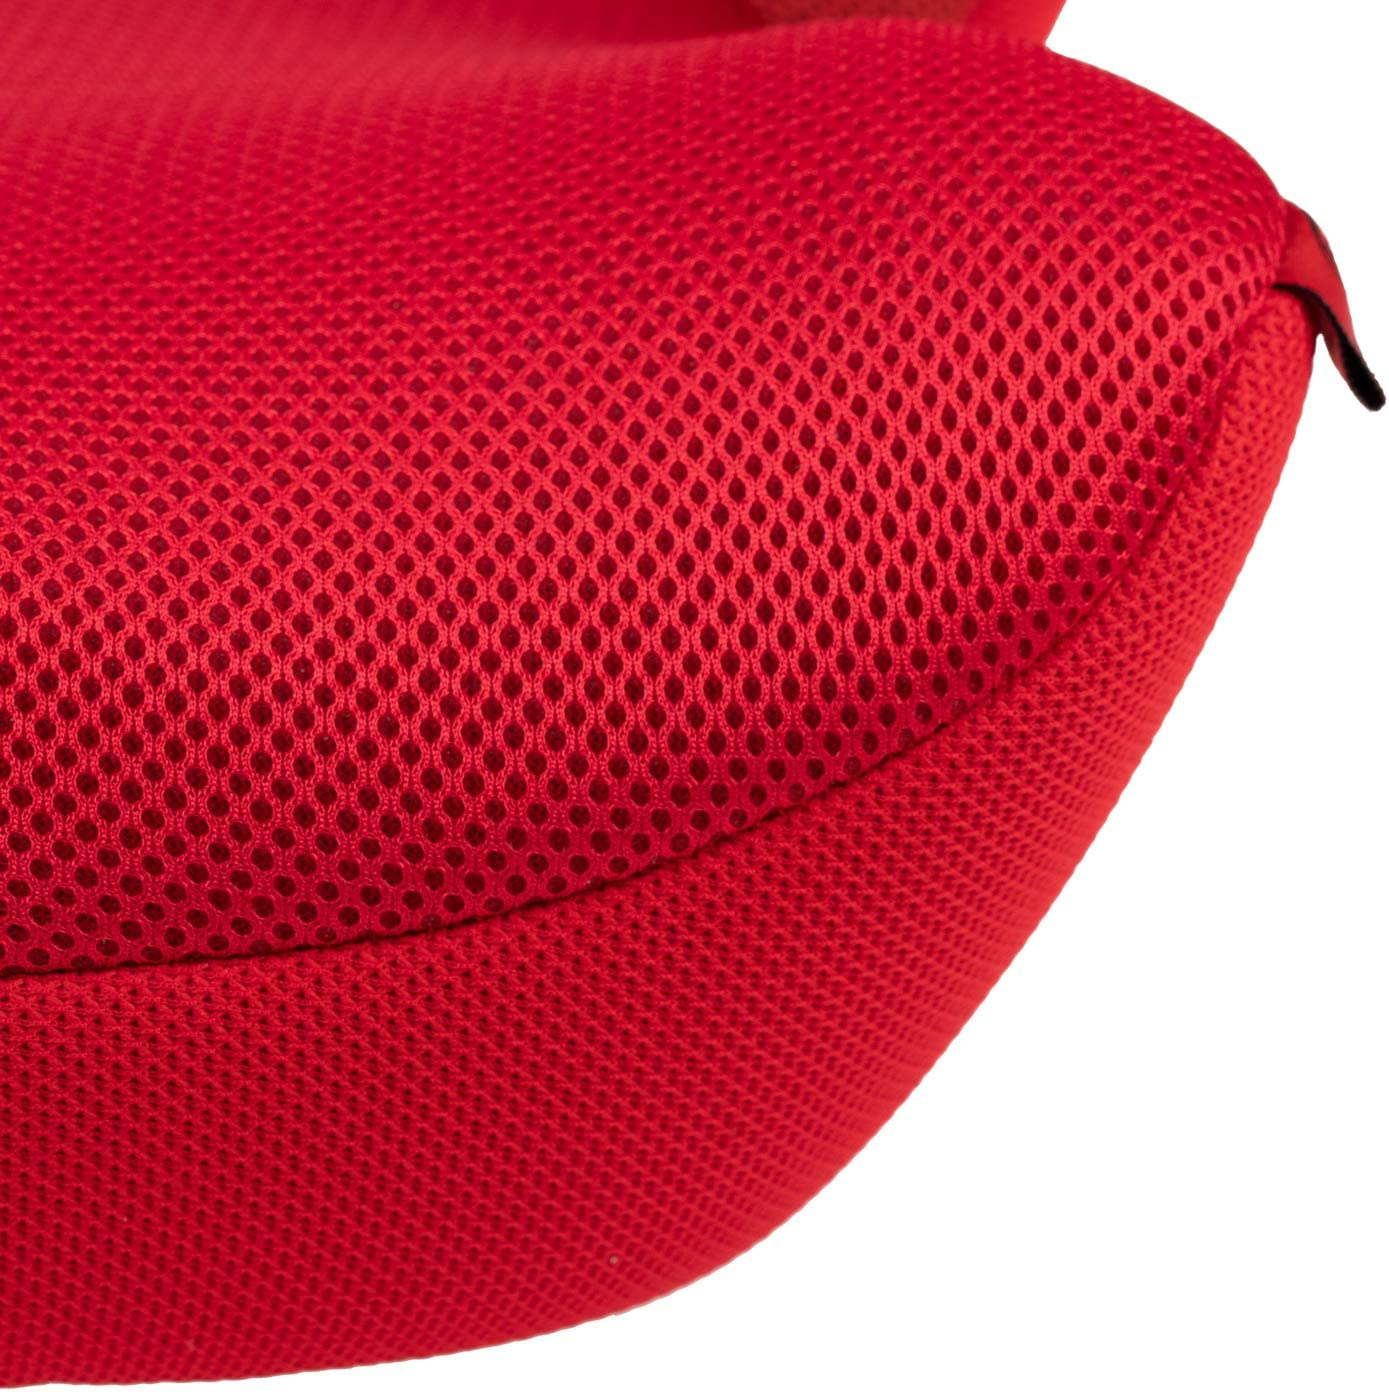 Racing Red Premium HEYNER SafeUp Ergo L Child Car Booster Seat Cushion Junior 4-12 Years With Soft Belt Pad